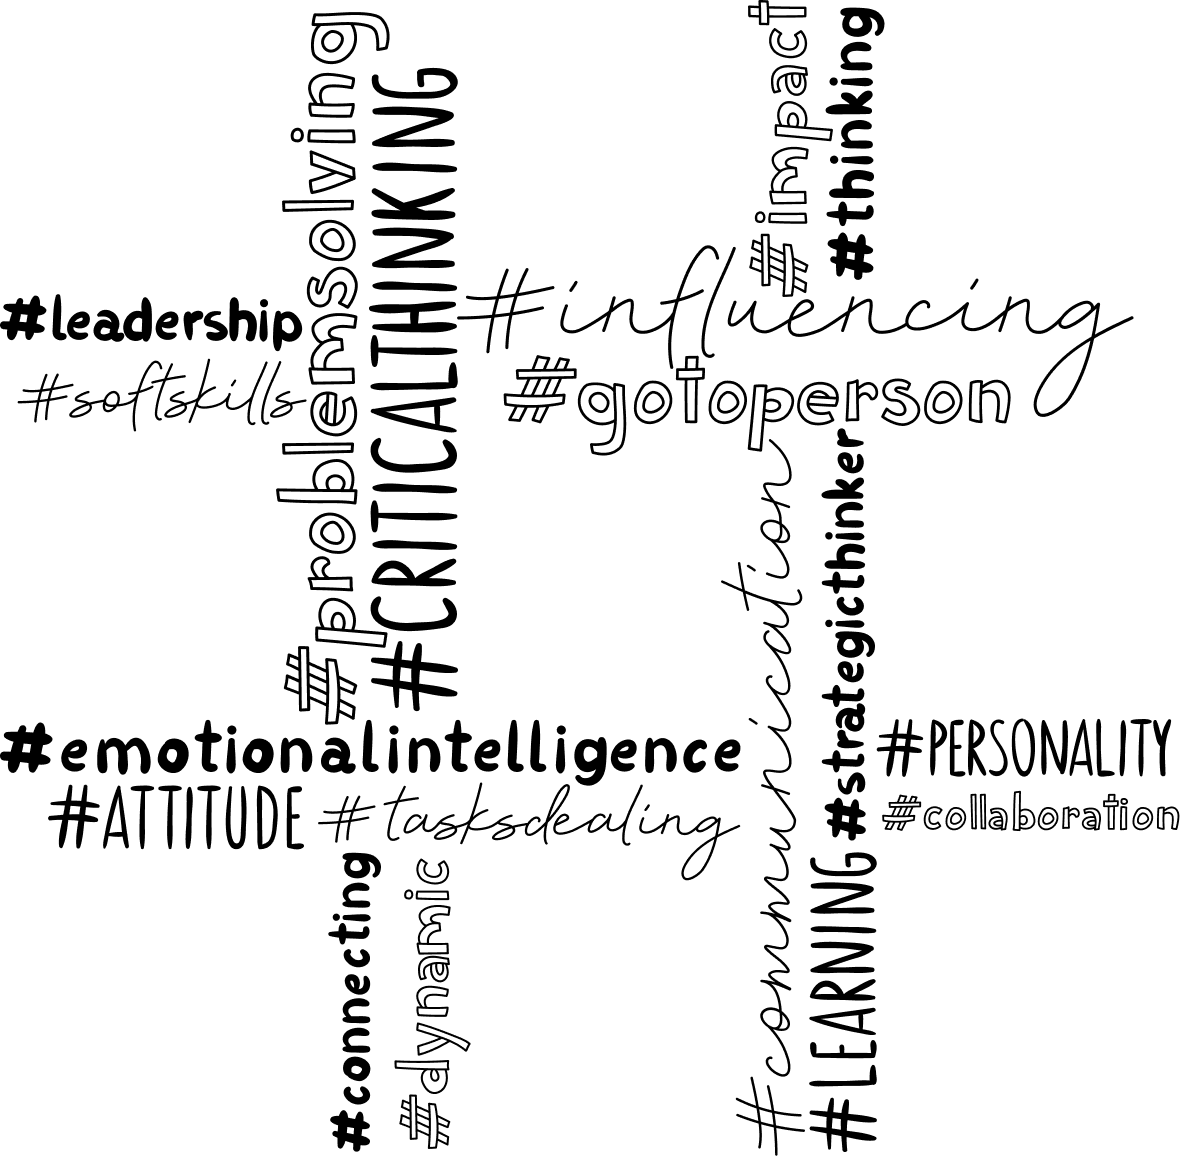 A hashtag symbol created by combining words describing different personality traits needed to succeed in achieving career goals.